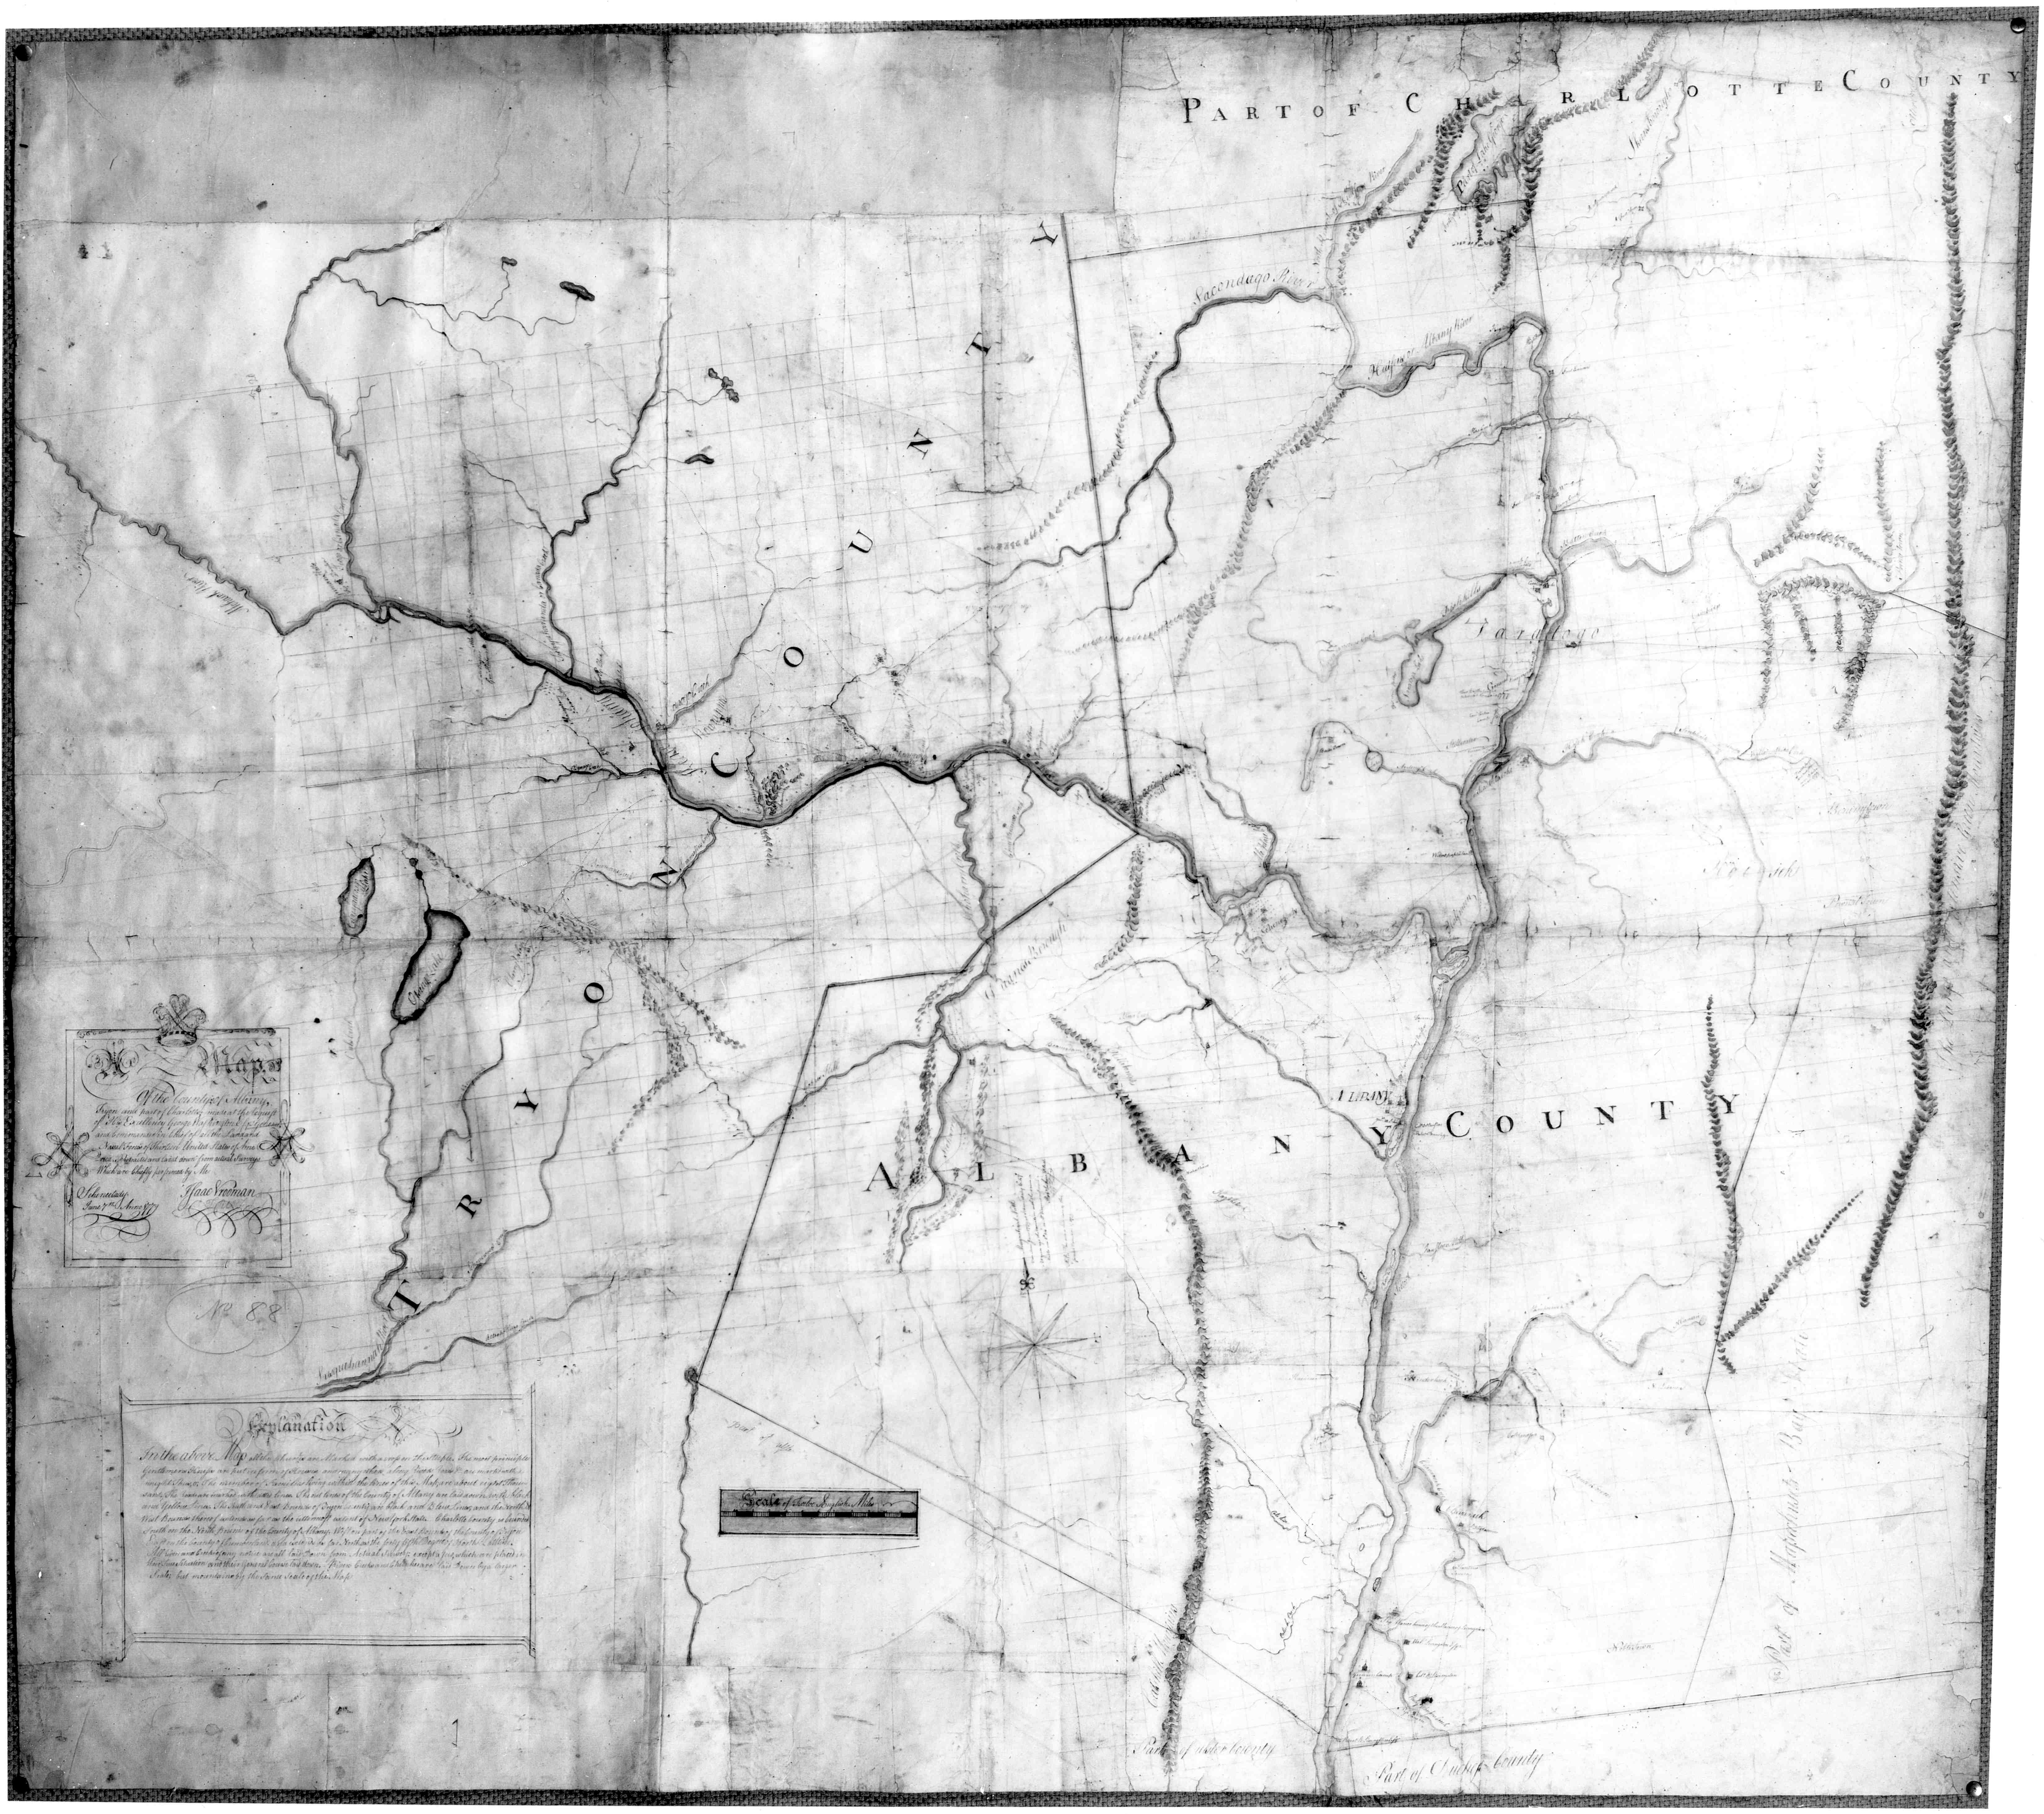 isaac vroomans 1779 map of upstate new york